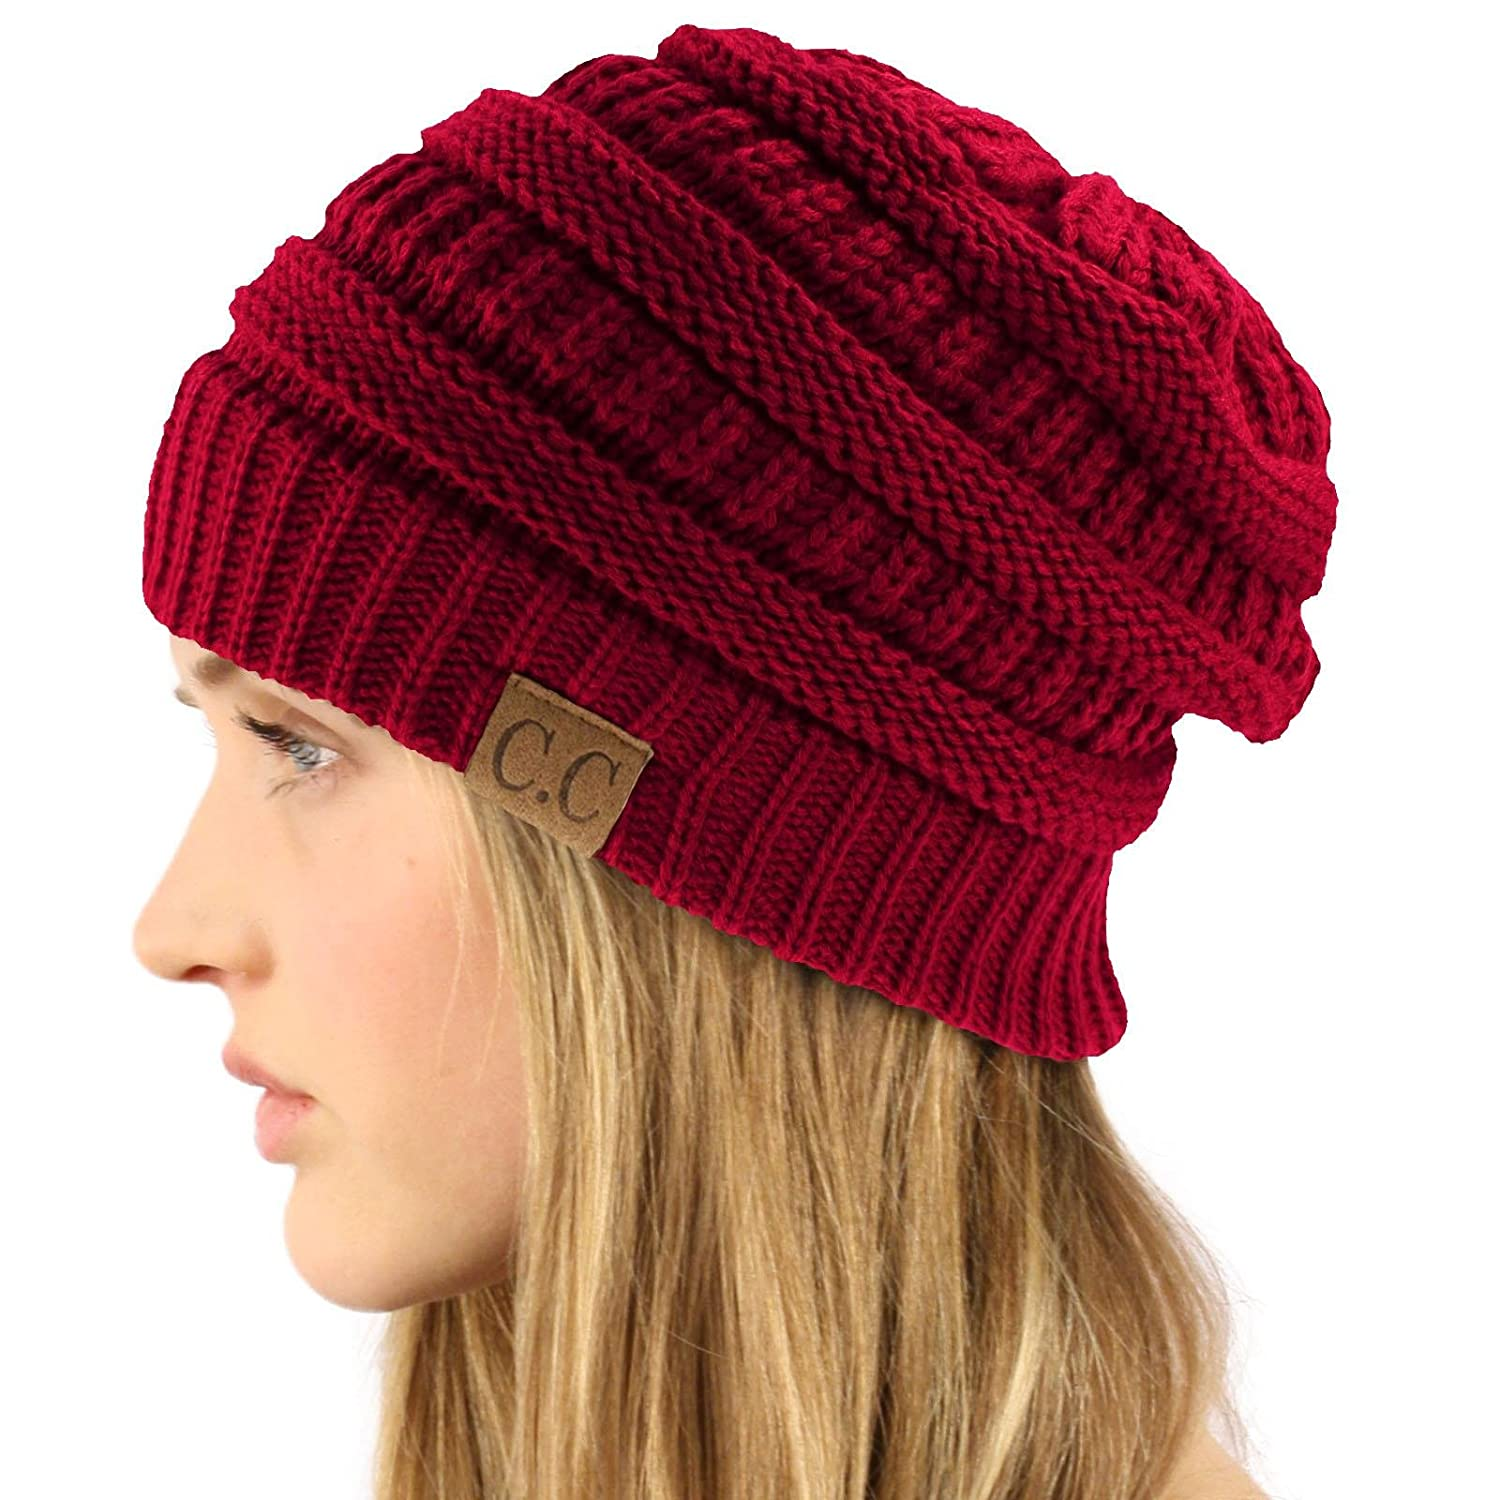 Unisex Winter Chunky Soft Stretch Cable Knit Slouch Beanie Skully Ski Hat Punkiss